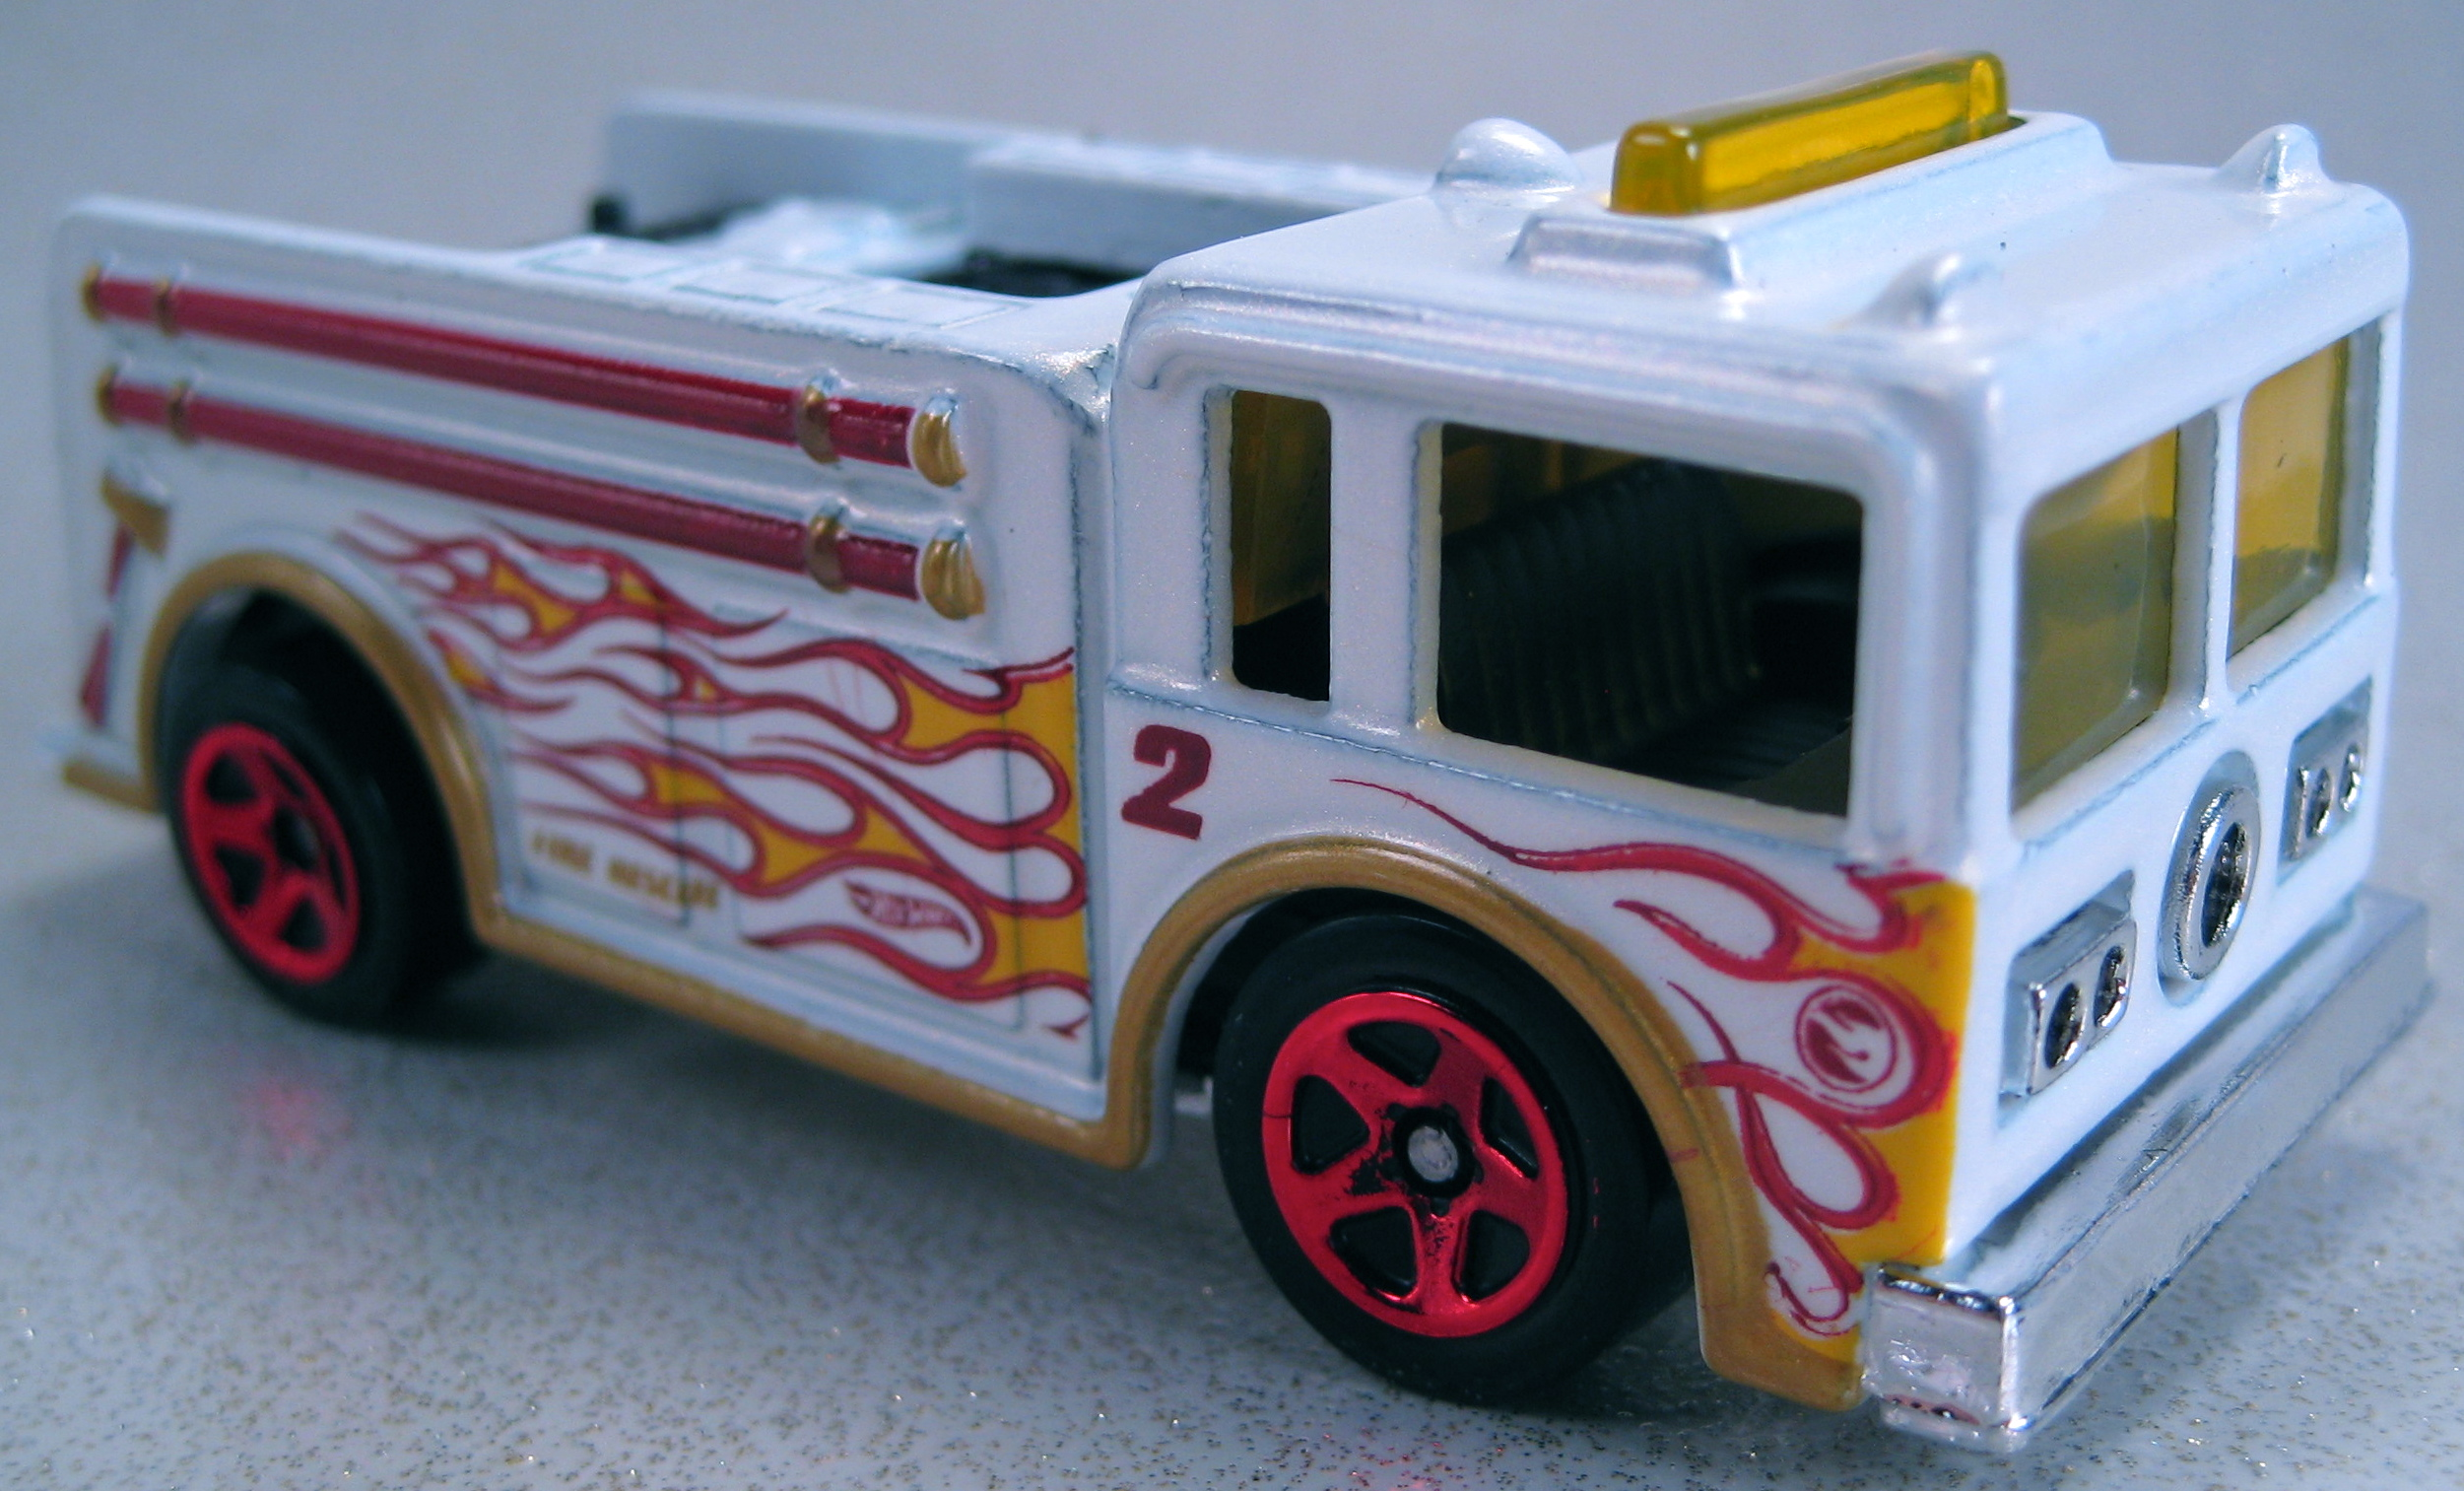 2013 Treasure Hunts Series Hot Wheels Wiki Fandom Powered By Wikia